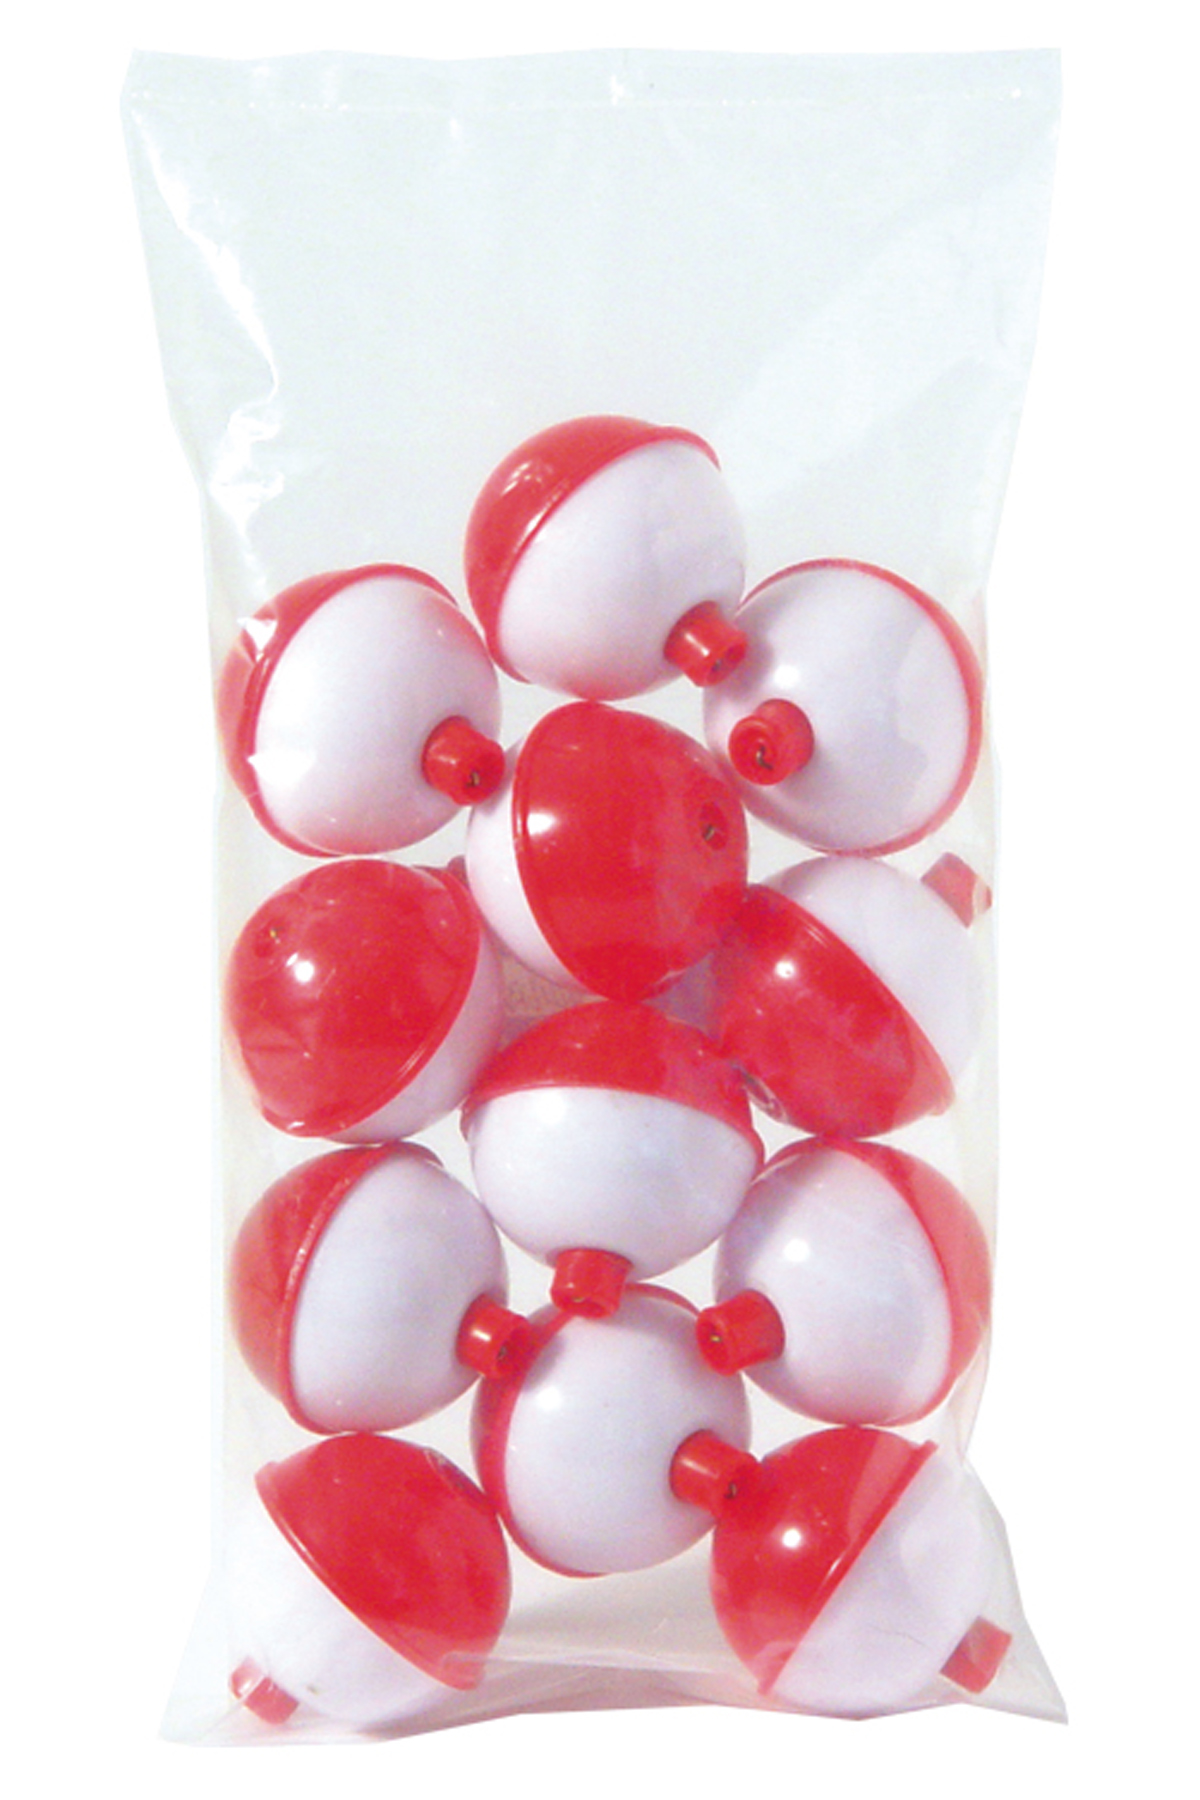 Fishing bobbers floats tackle red white plastic 50 pack for Fishing bobbers bulk